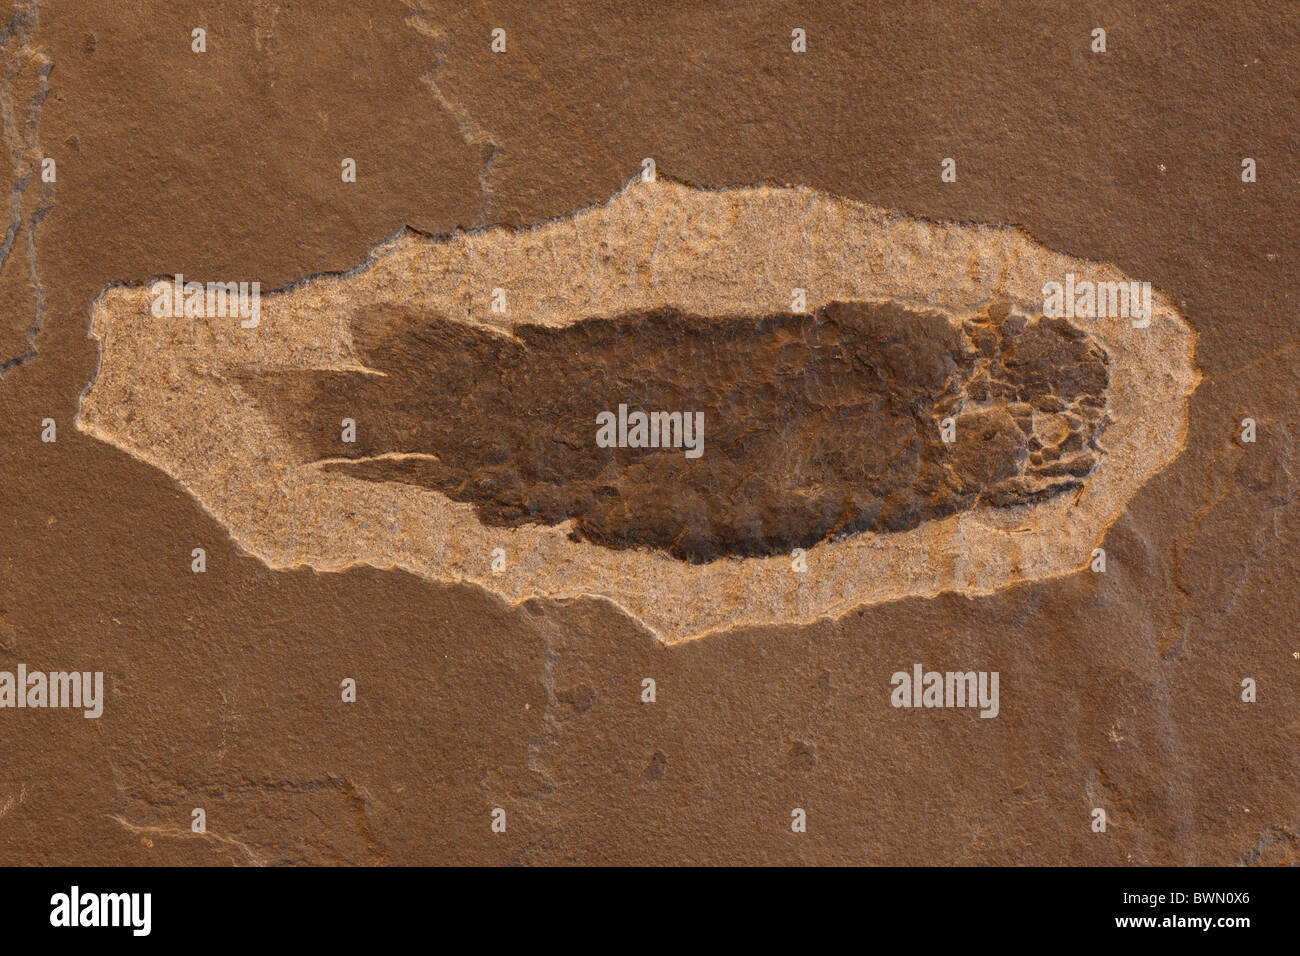 Fossil lungfish - Dipterus sp. - Mid Devonian - Caithness - Scotland - Stock Image